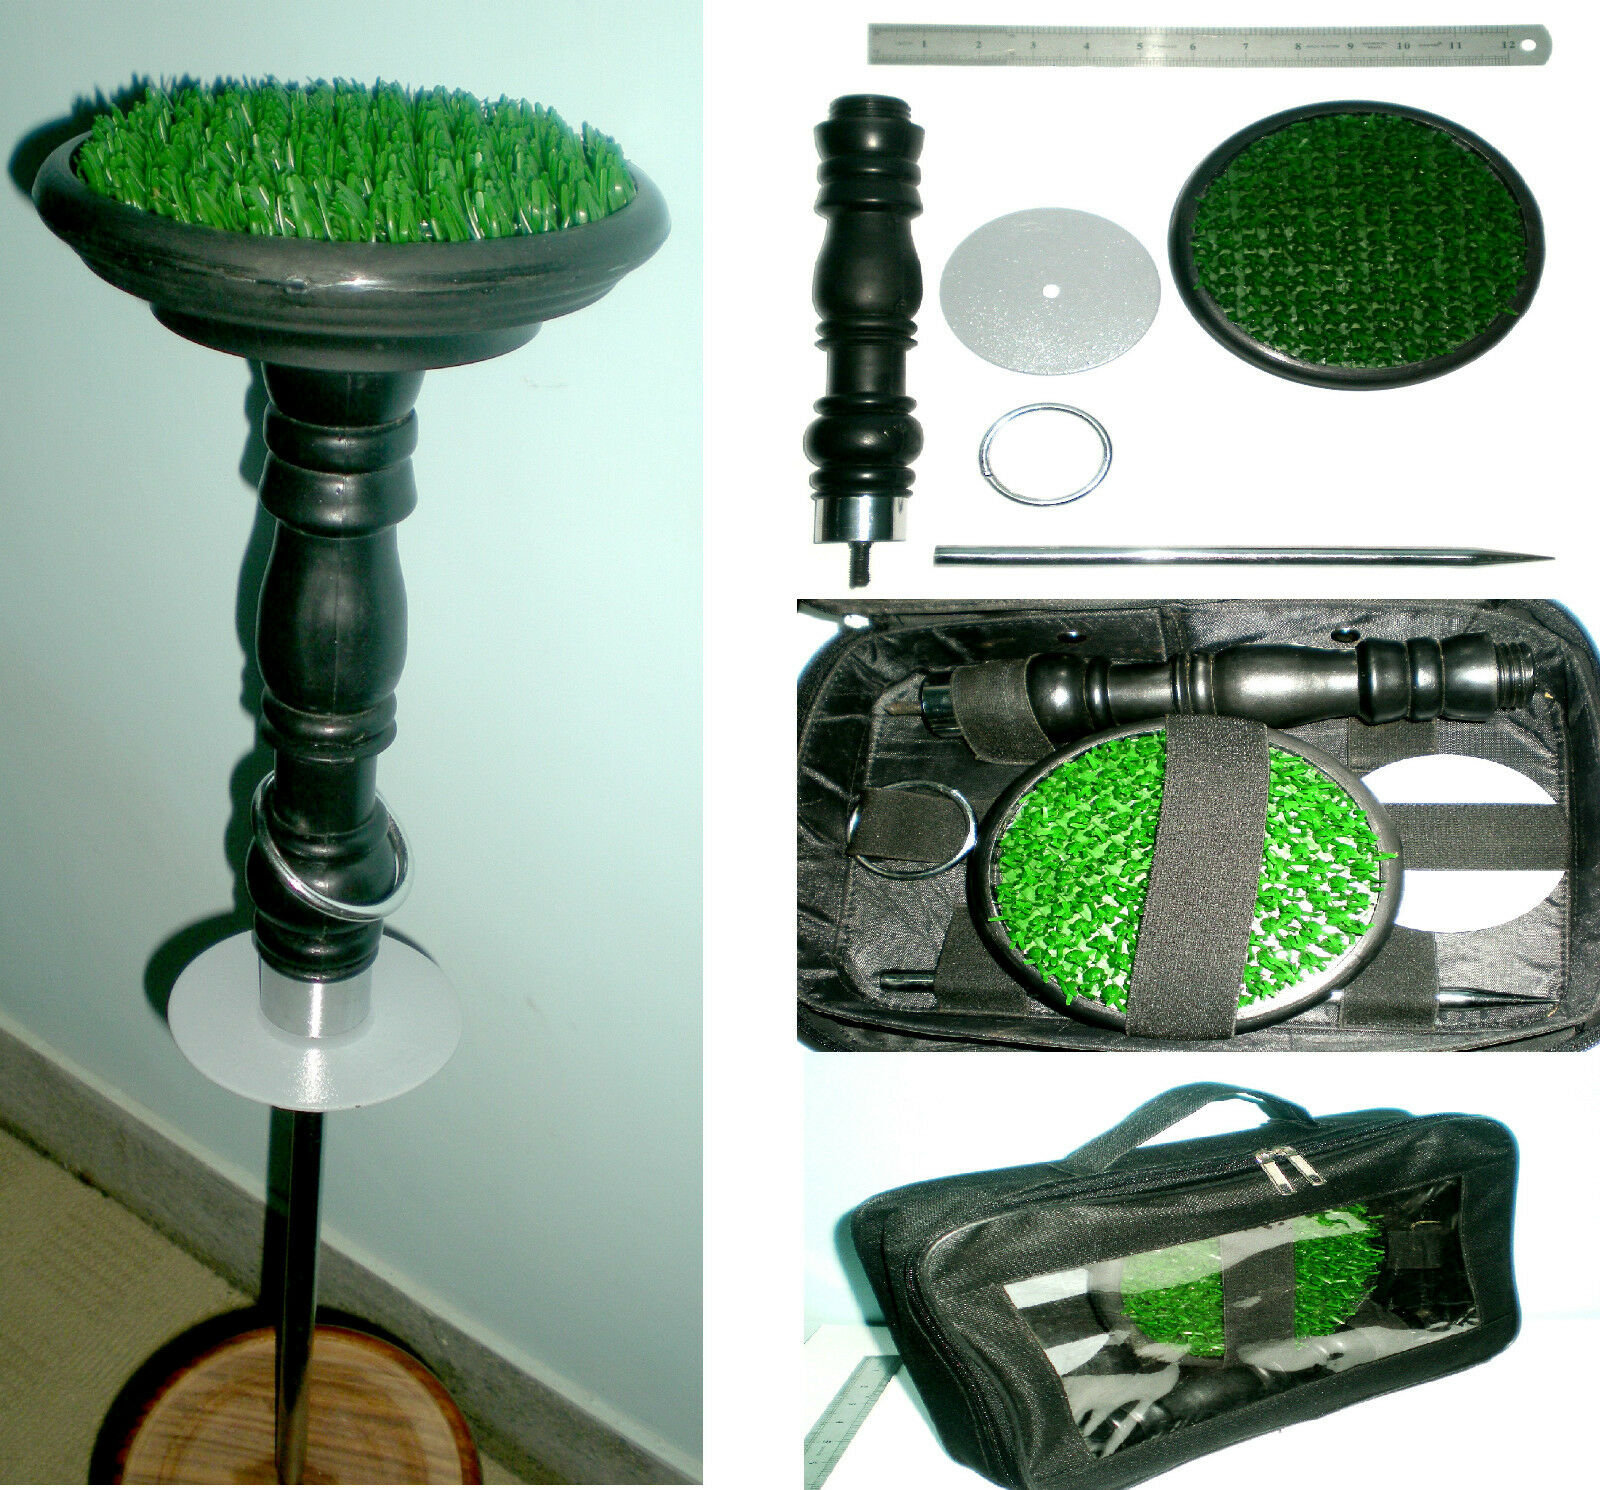 Buy 4 Falconry Block Perches 6at Discount, Astroturf In Bag (portable 5 In 1)